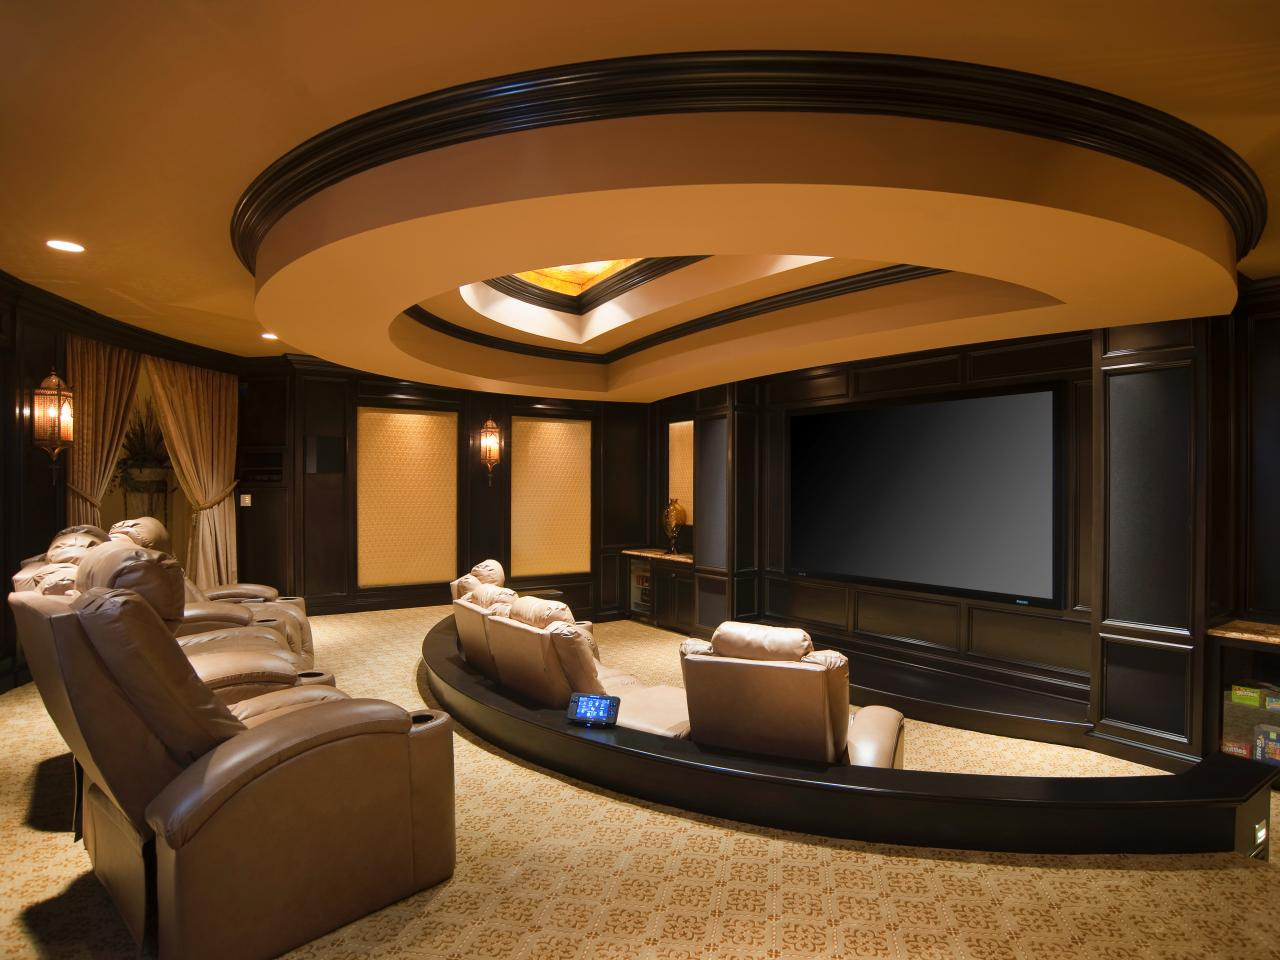 Home Cinema Designs Home theater Carpet Ideas Options & Expert Tips